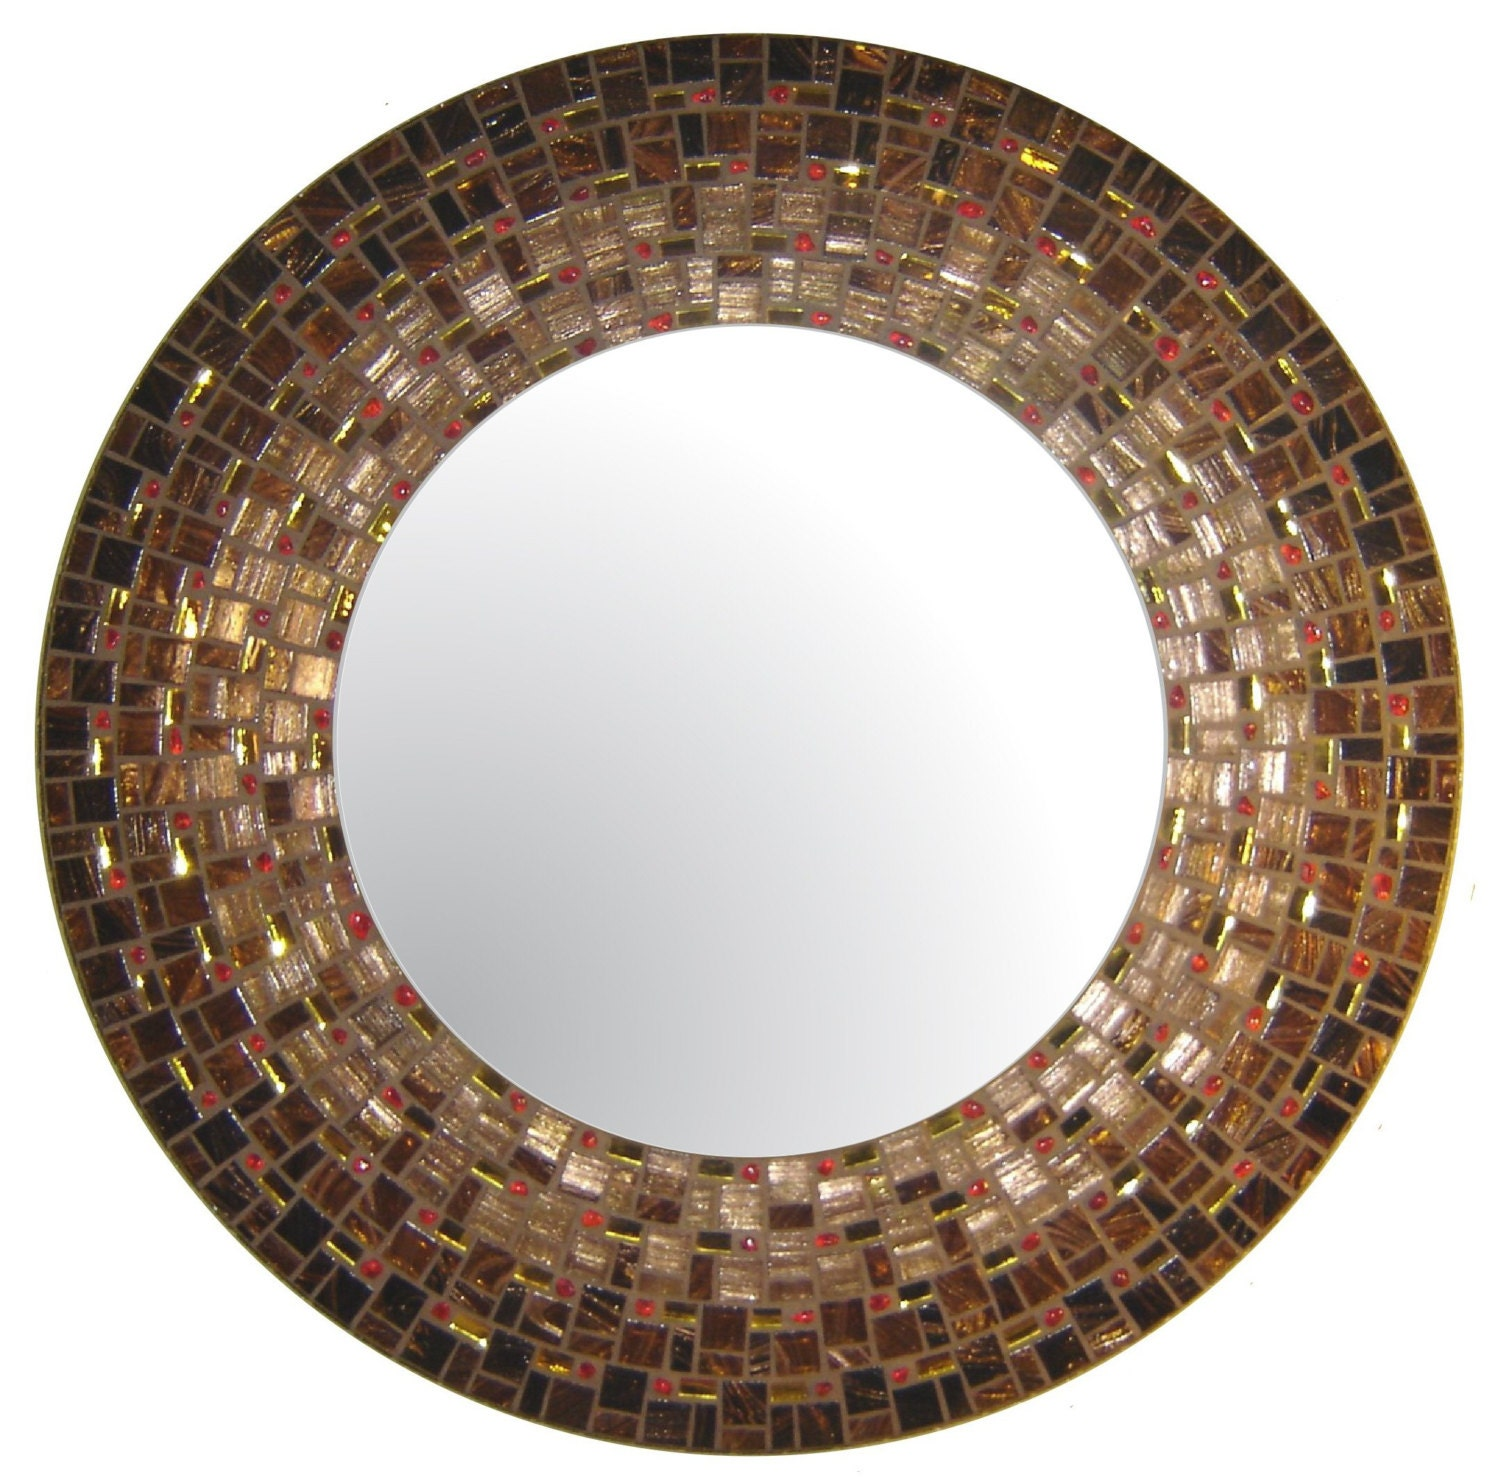 Moroccan Mosaic Mirror Brown Copper Gold Amp Red By Opusmosaics